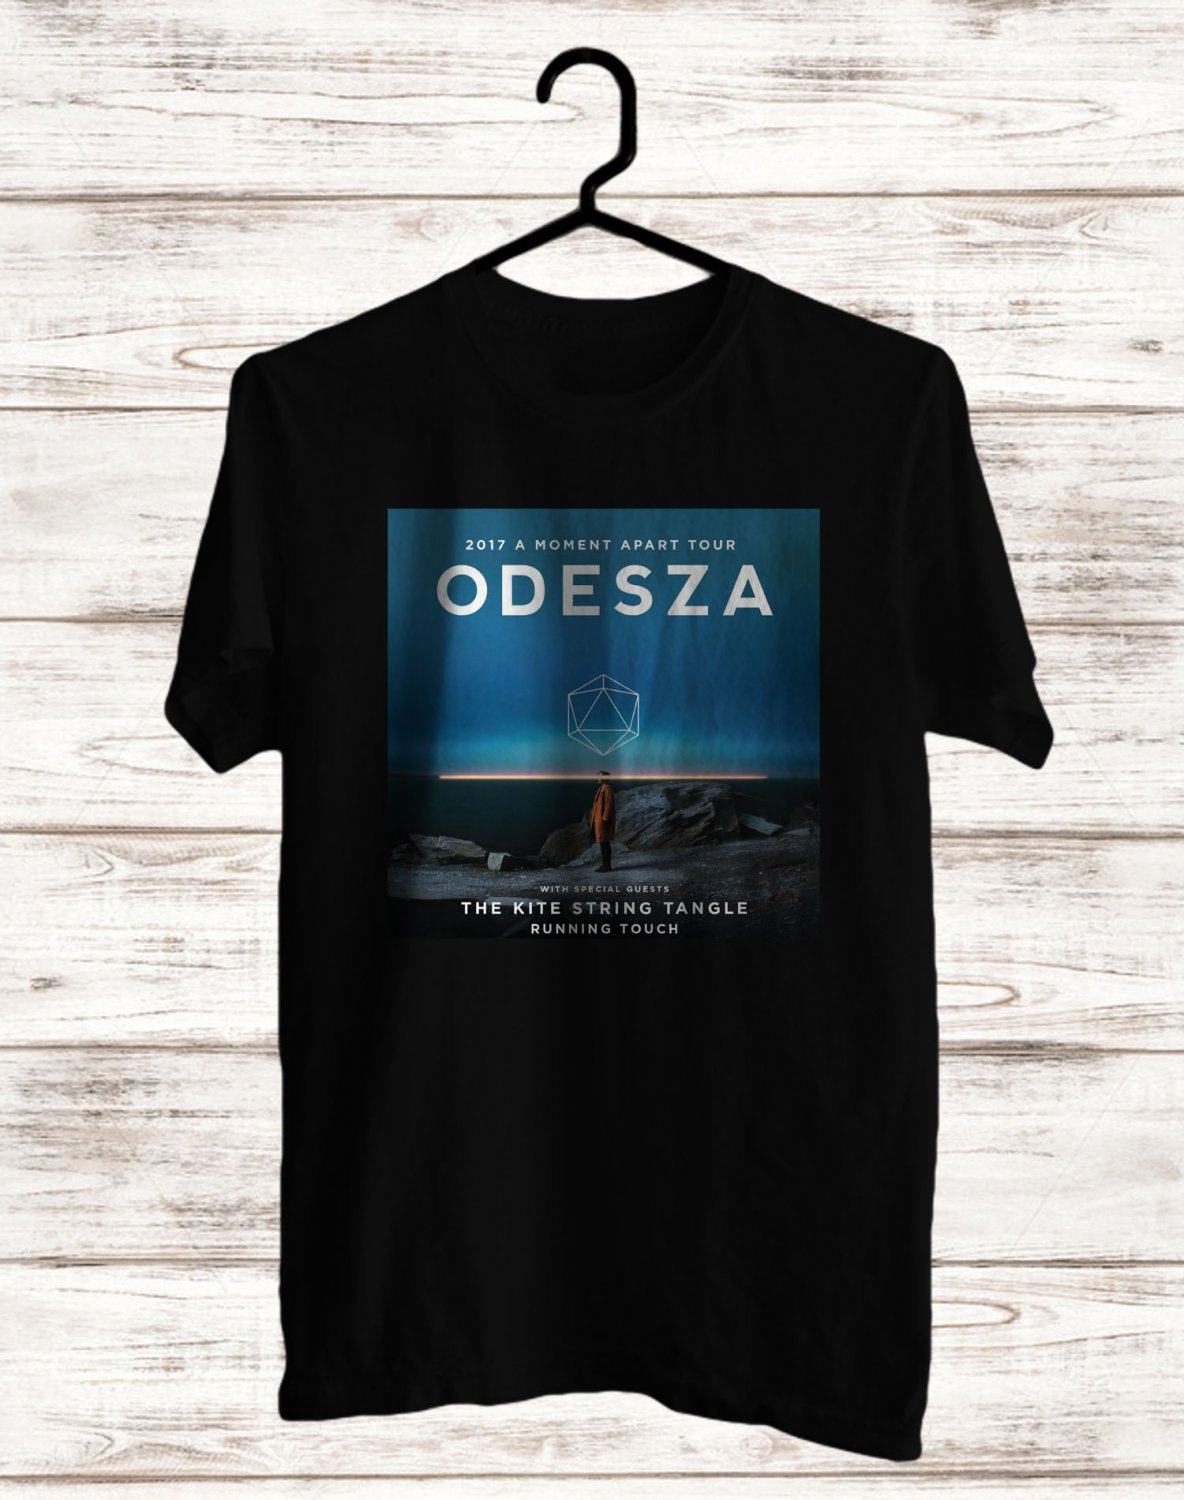 Odesza A Moment Apart Tour 2017 Black Tee's Front Side by Complexart z1